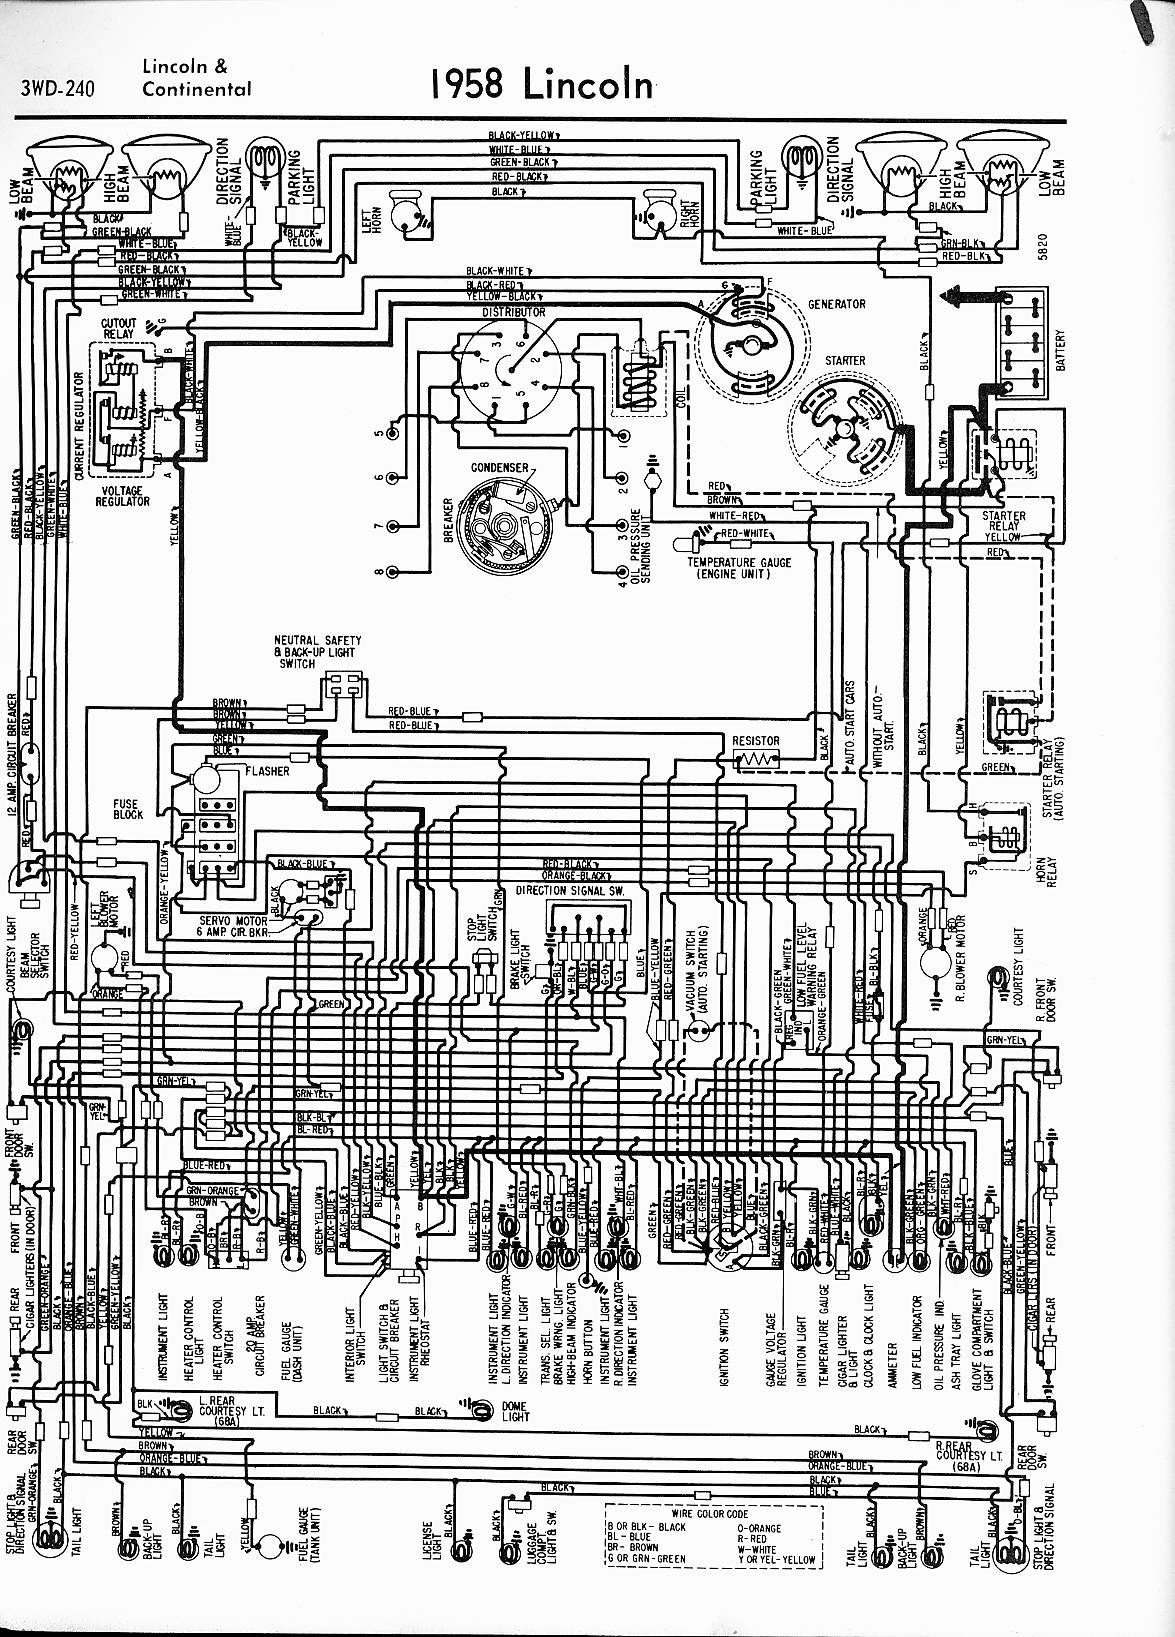 1960 Lincoln Wiring Diagram Ford Thunderbird Convertible Diagrams Rh 34 Naehbehr De Continental 1998 Navigator